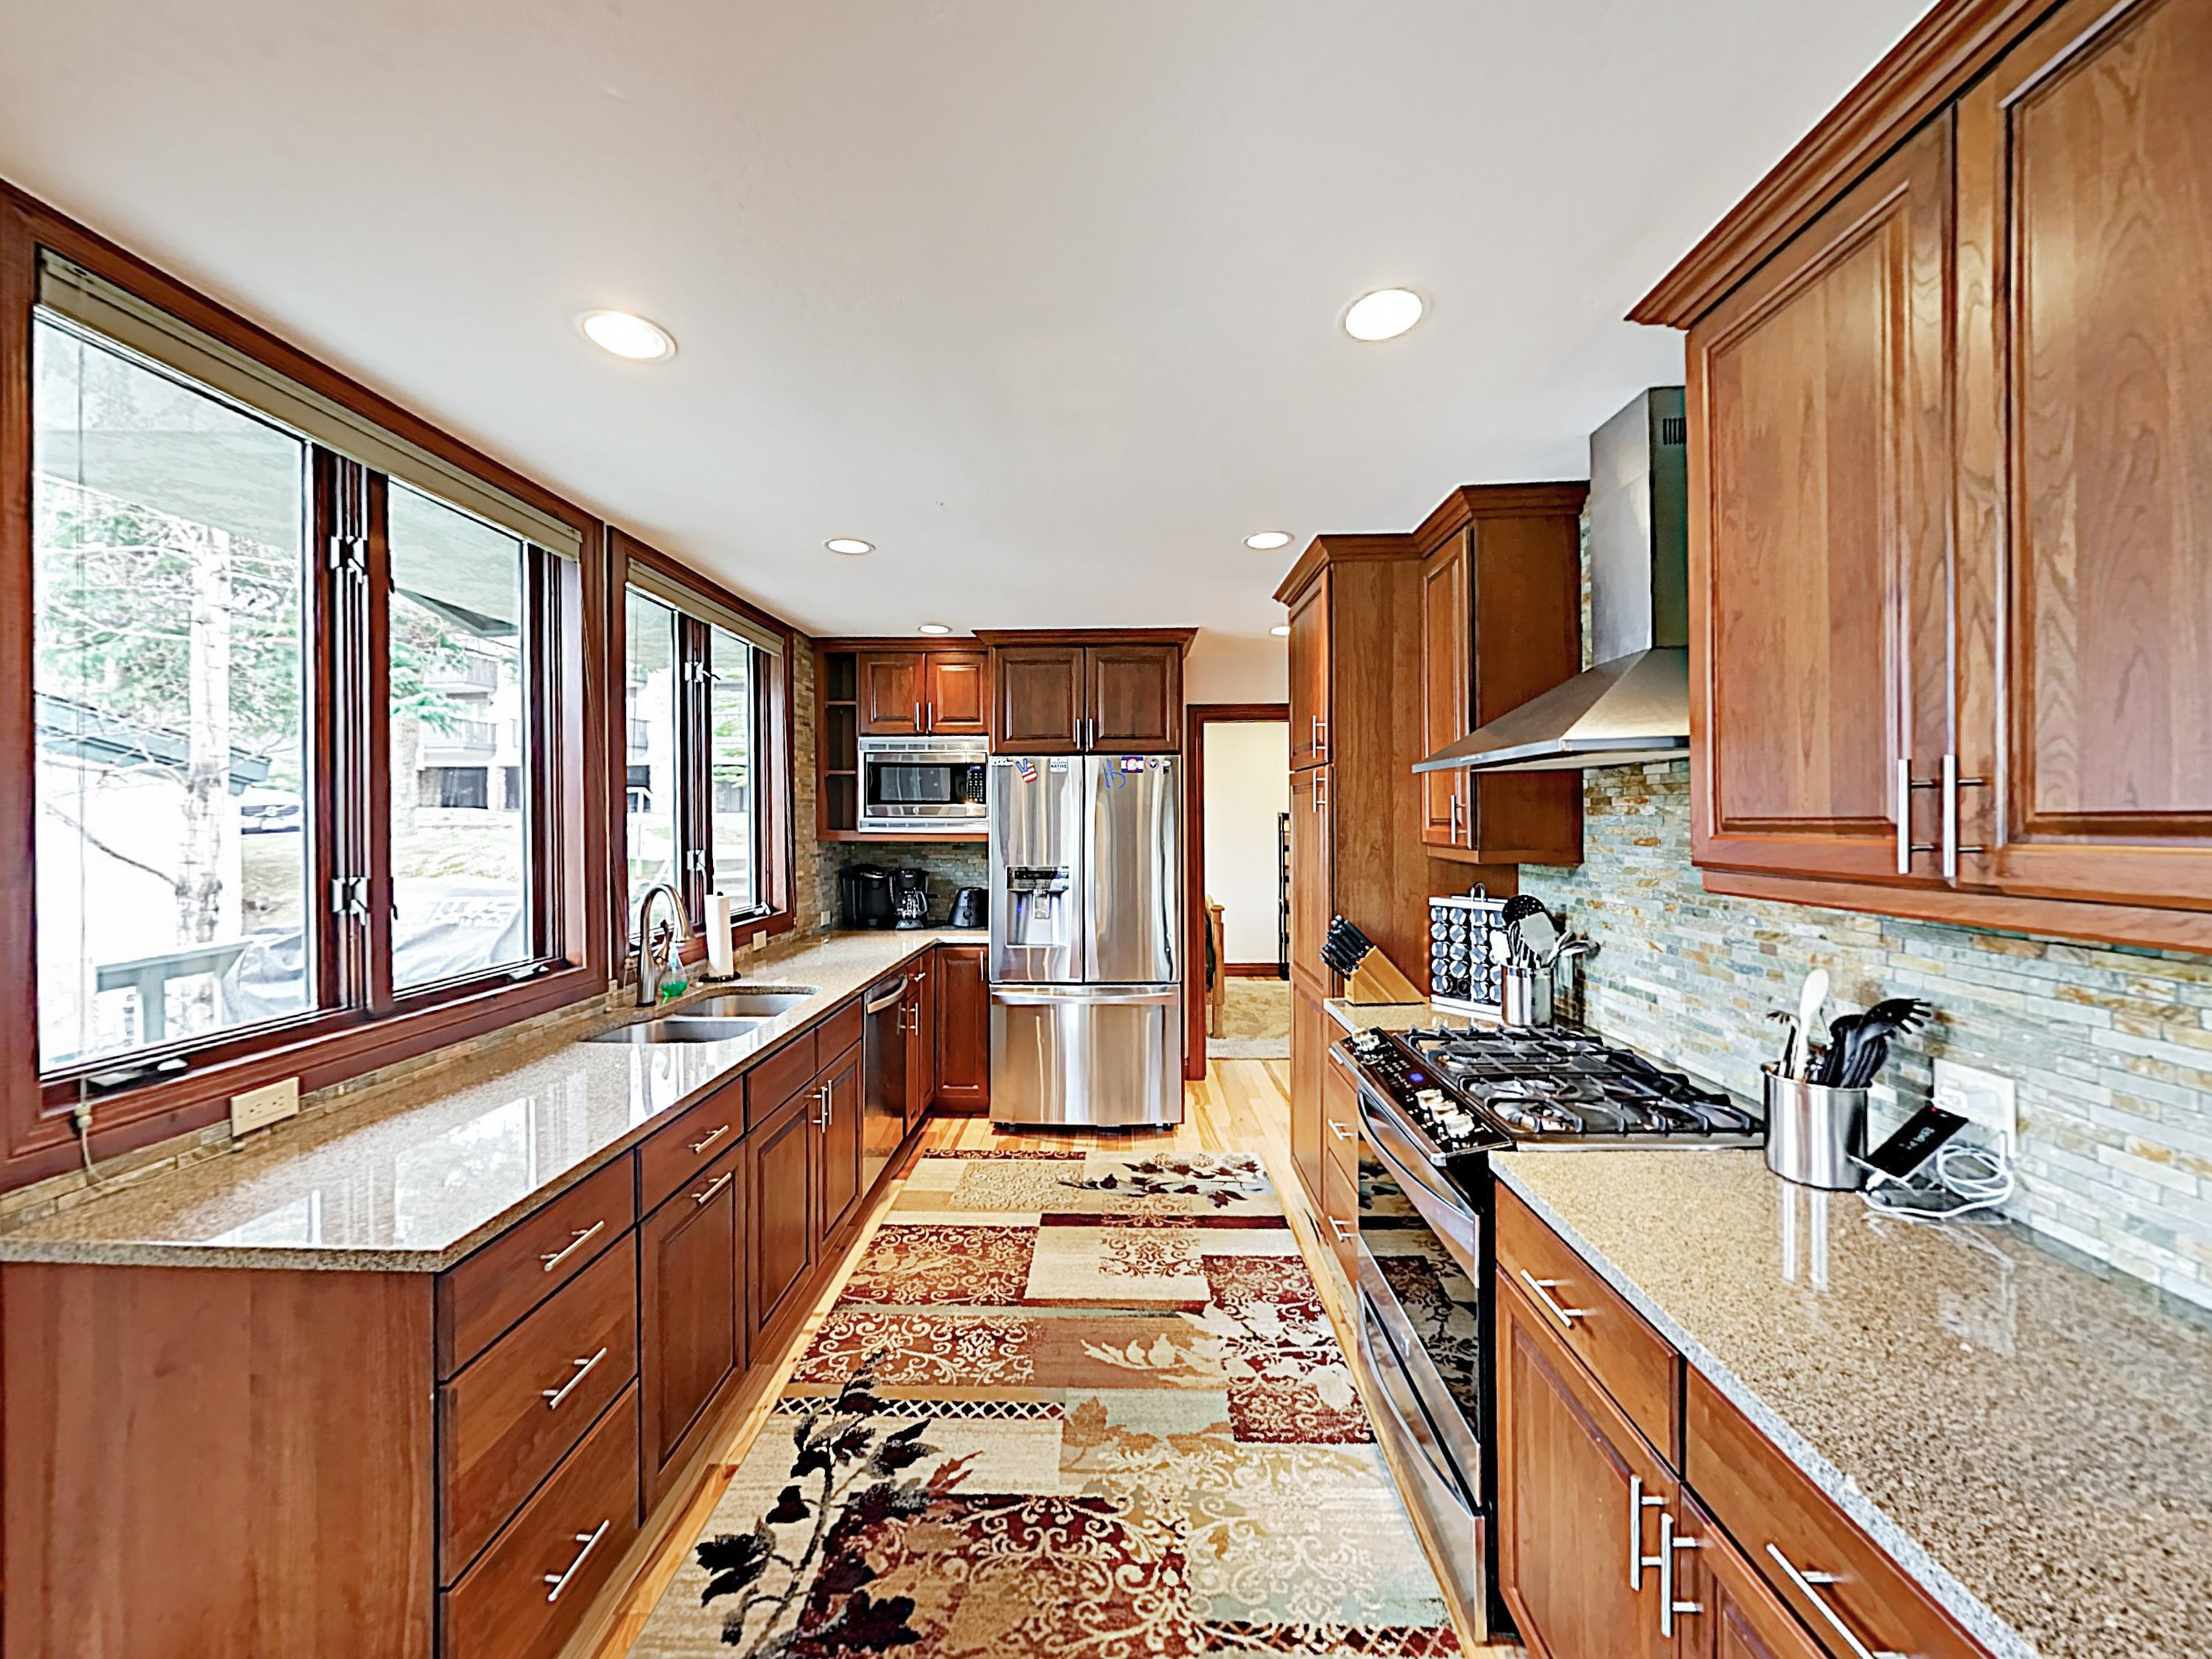 The gourmet kitchen features glossy granite countertops and a full suite of stainless steel appliances.